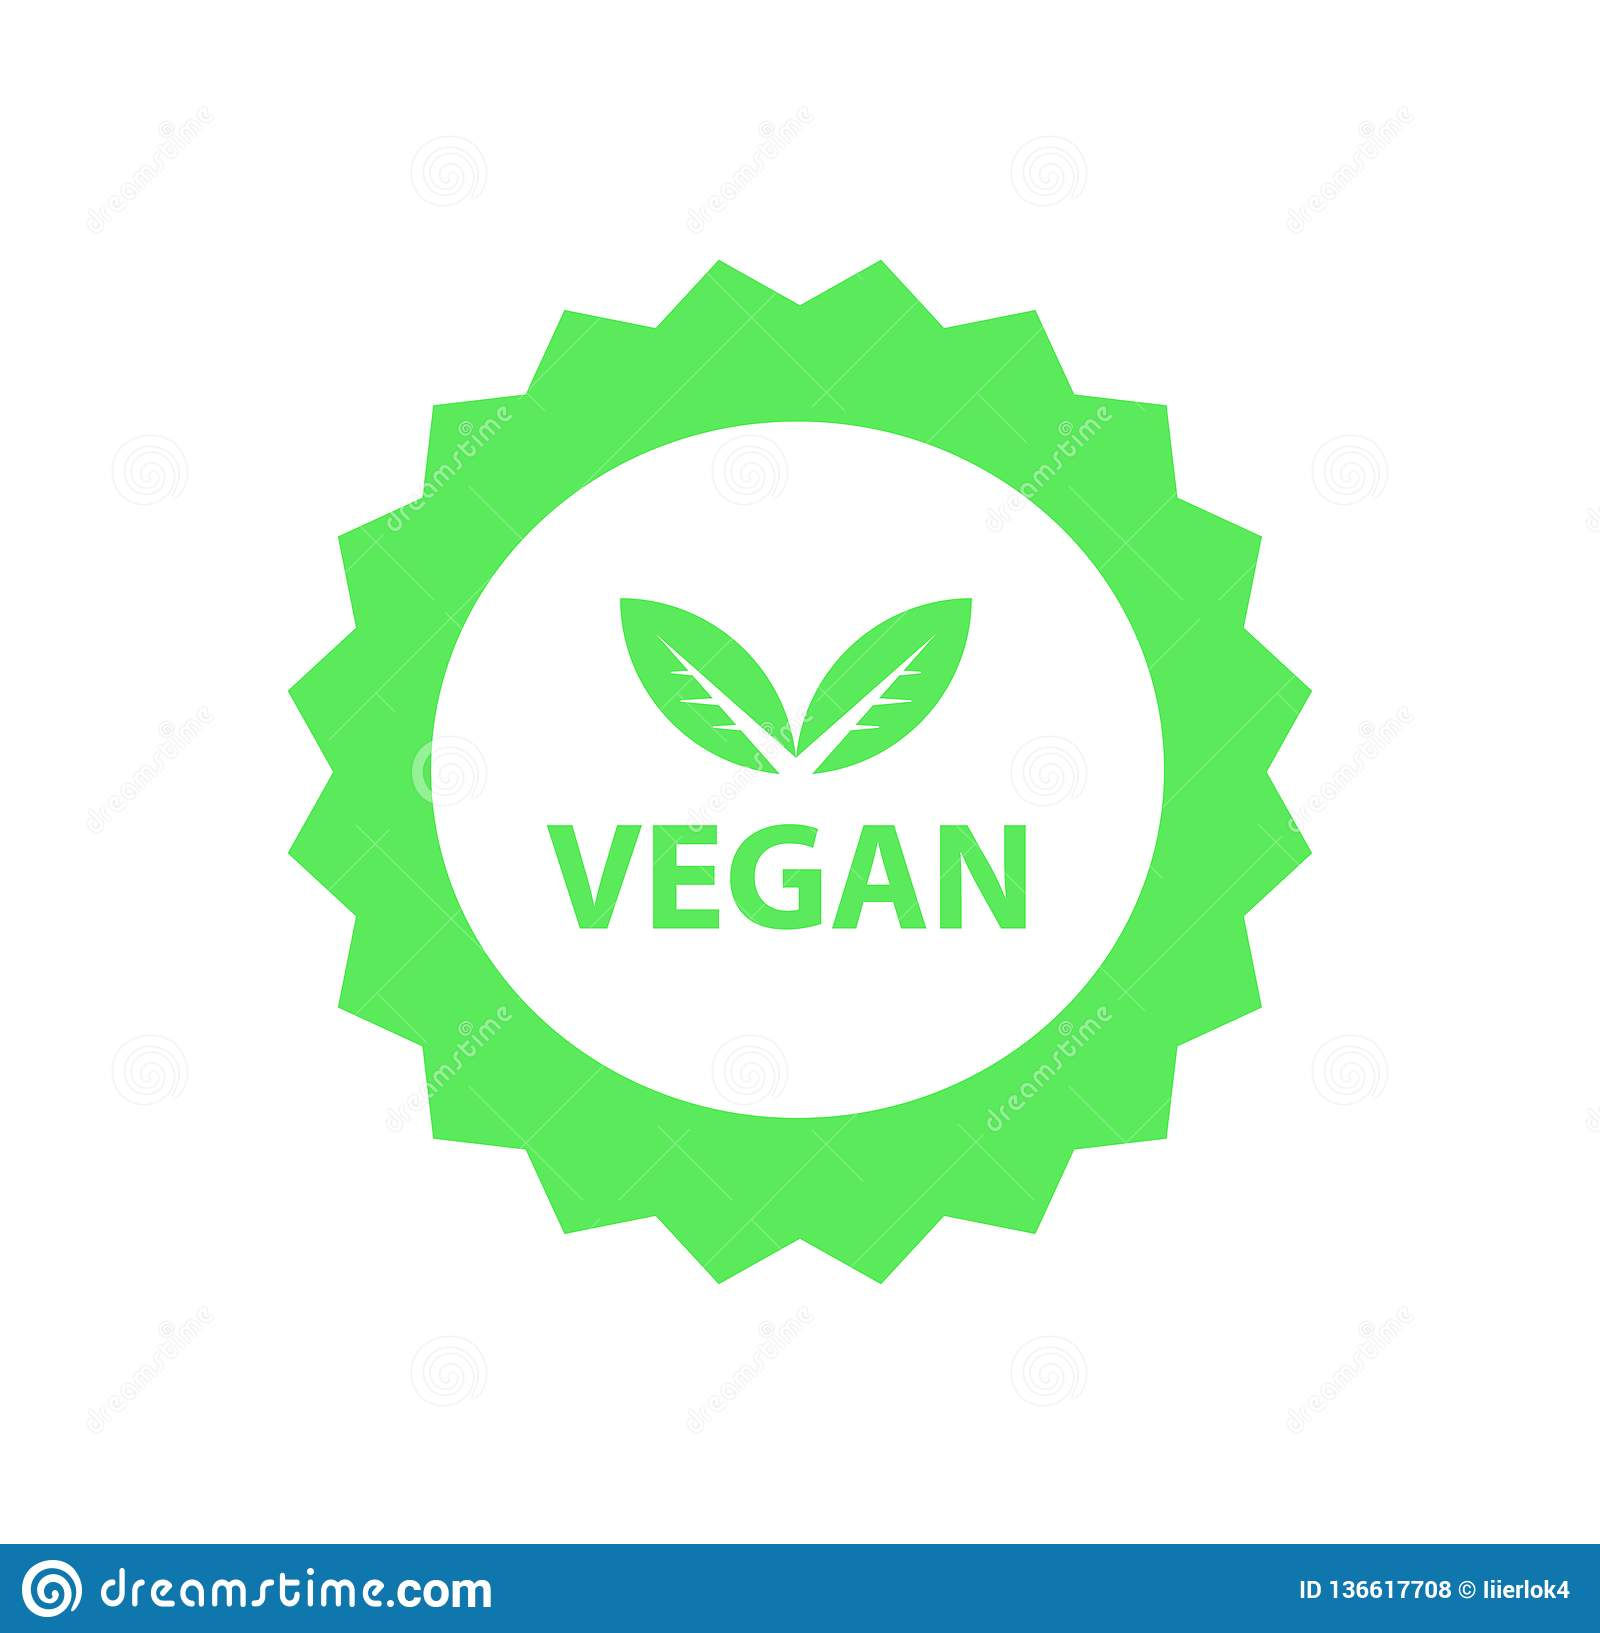 Vegan logo, organic bio logos or sign. Raw, healthy food badges, tags set for cafe, restaurants, products packaging etc